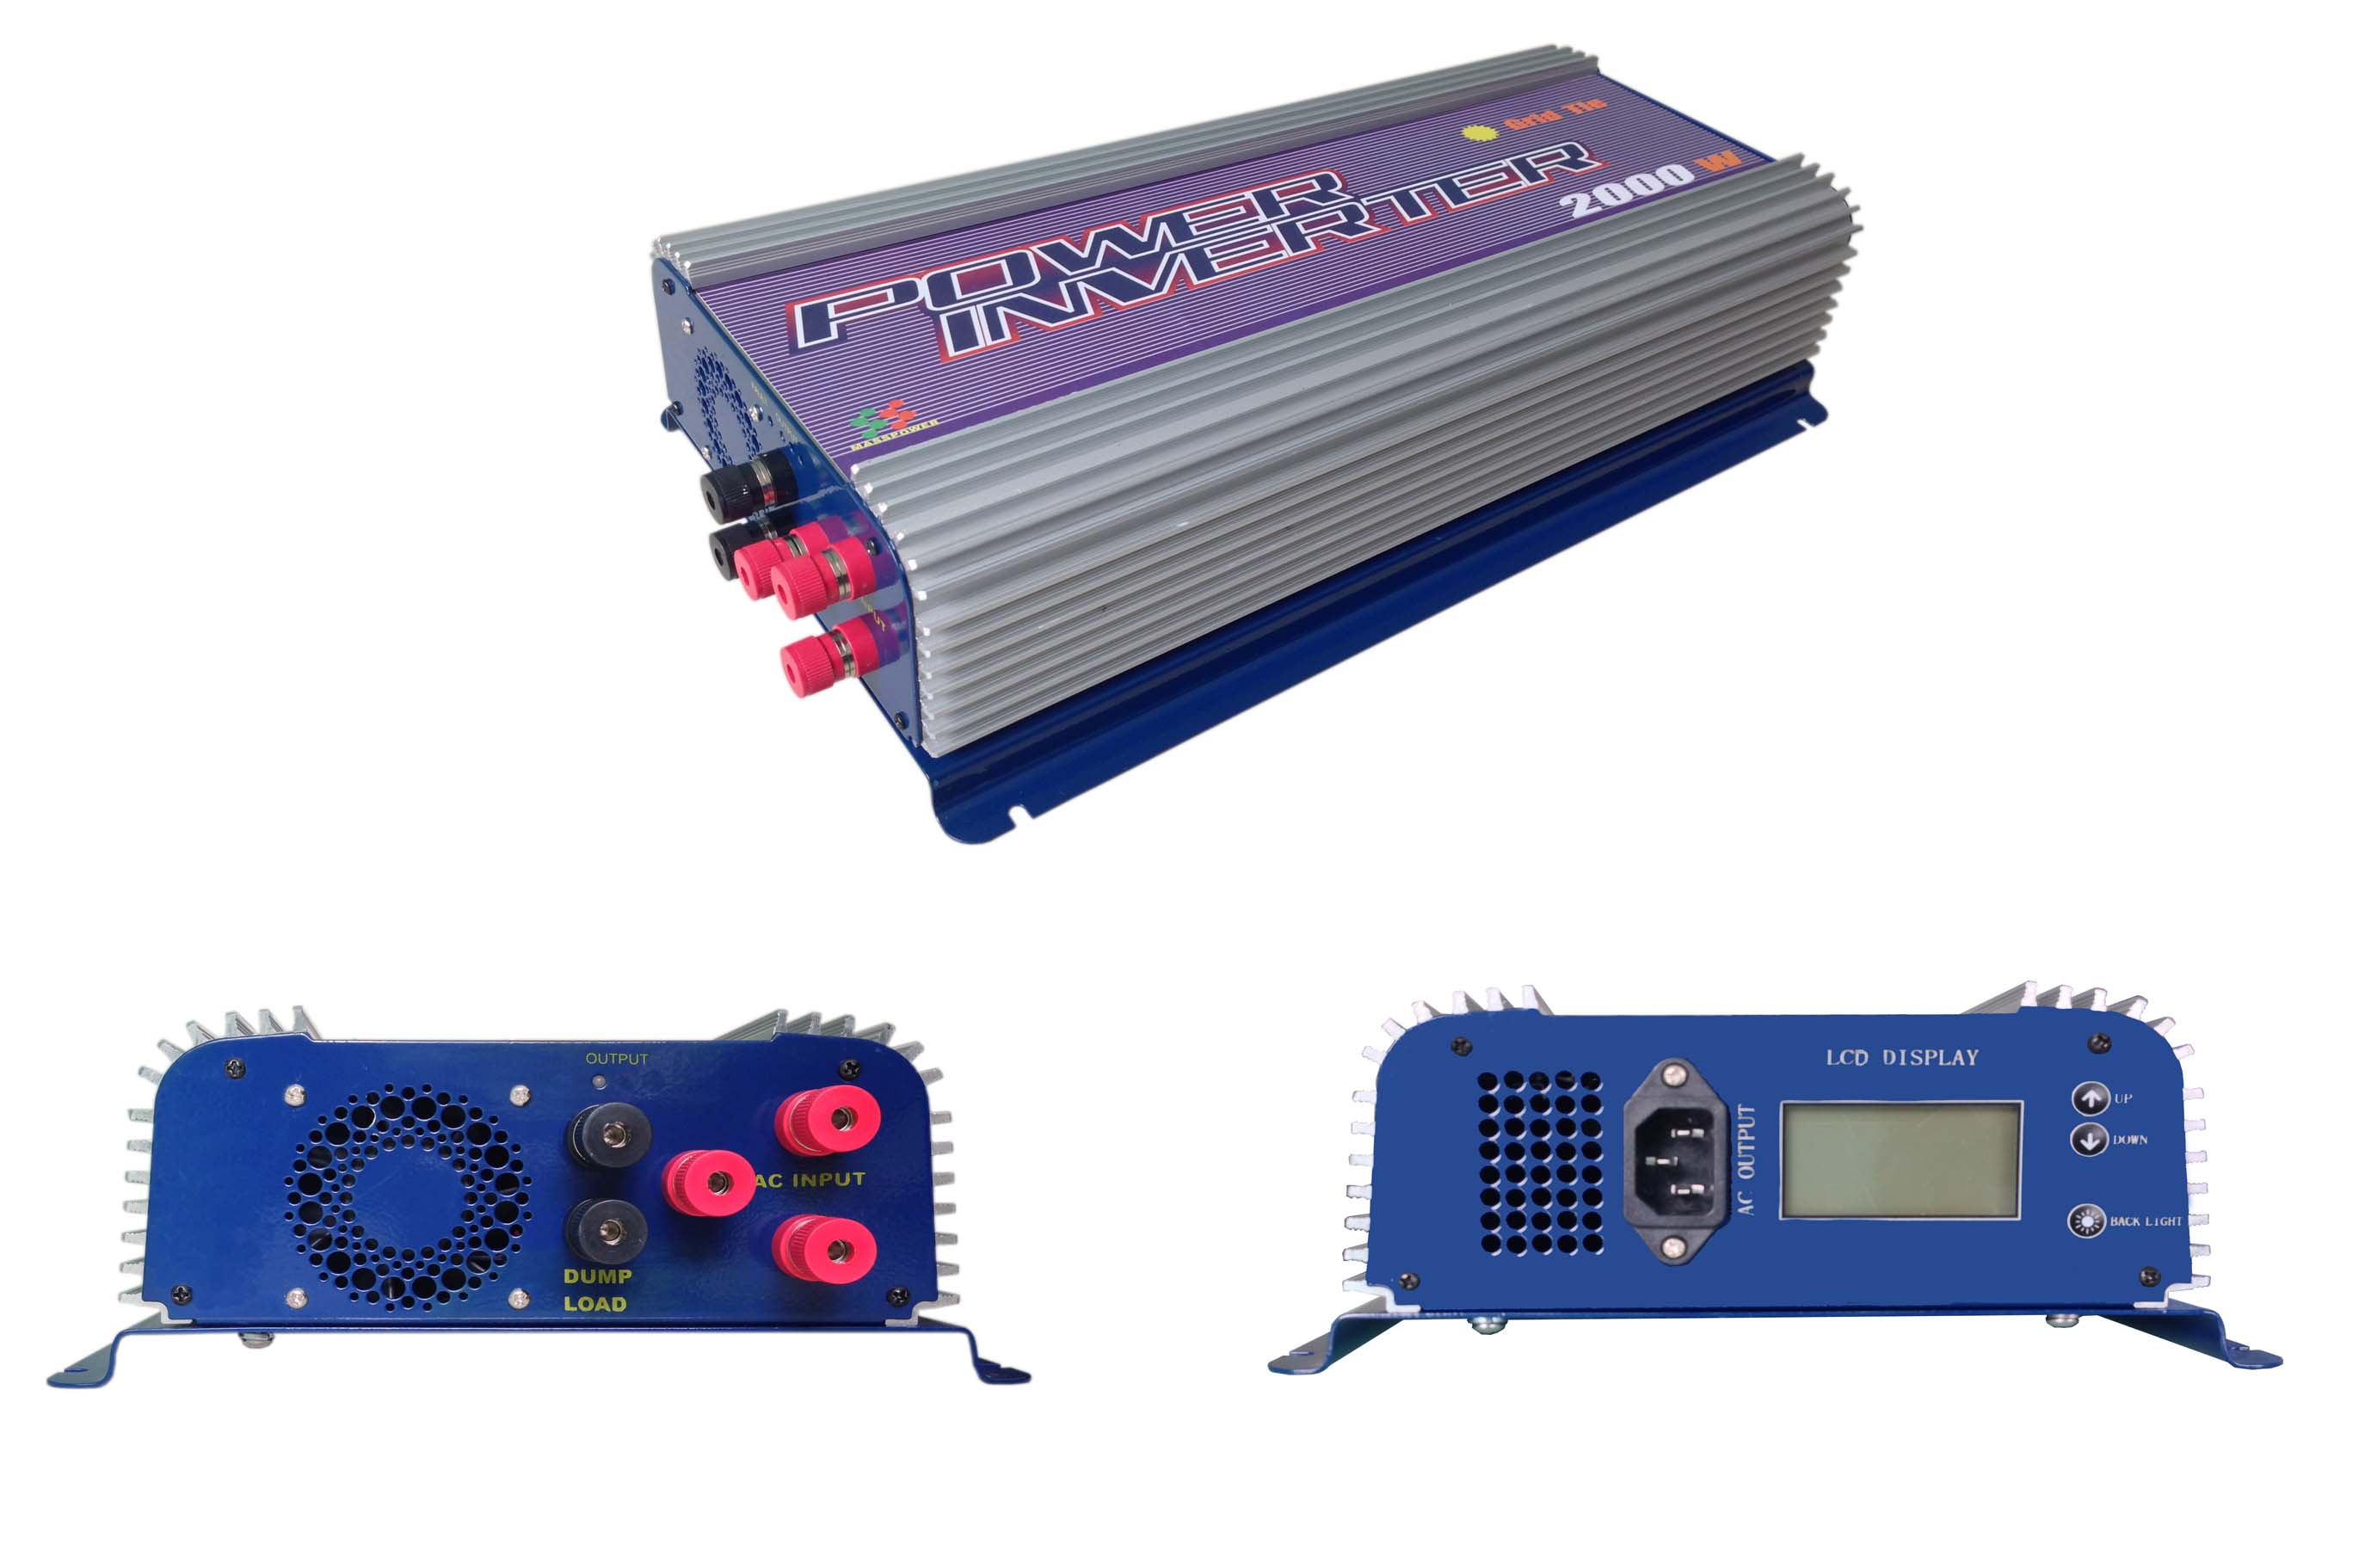 SUN-2000G-WAL Wind power grid tie inverter 2000w